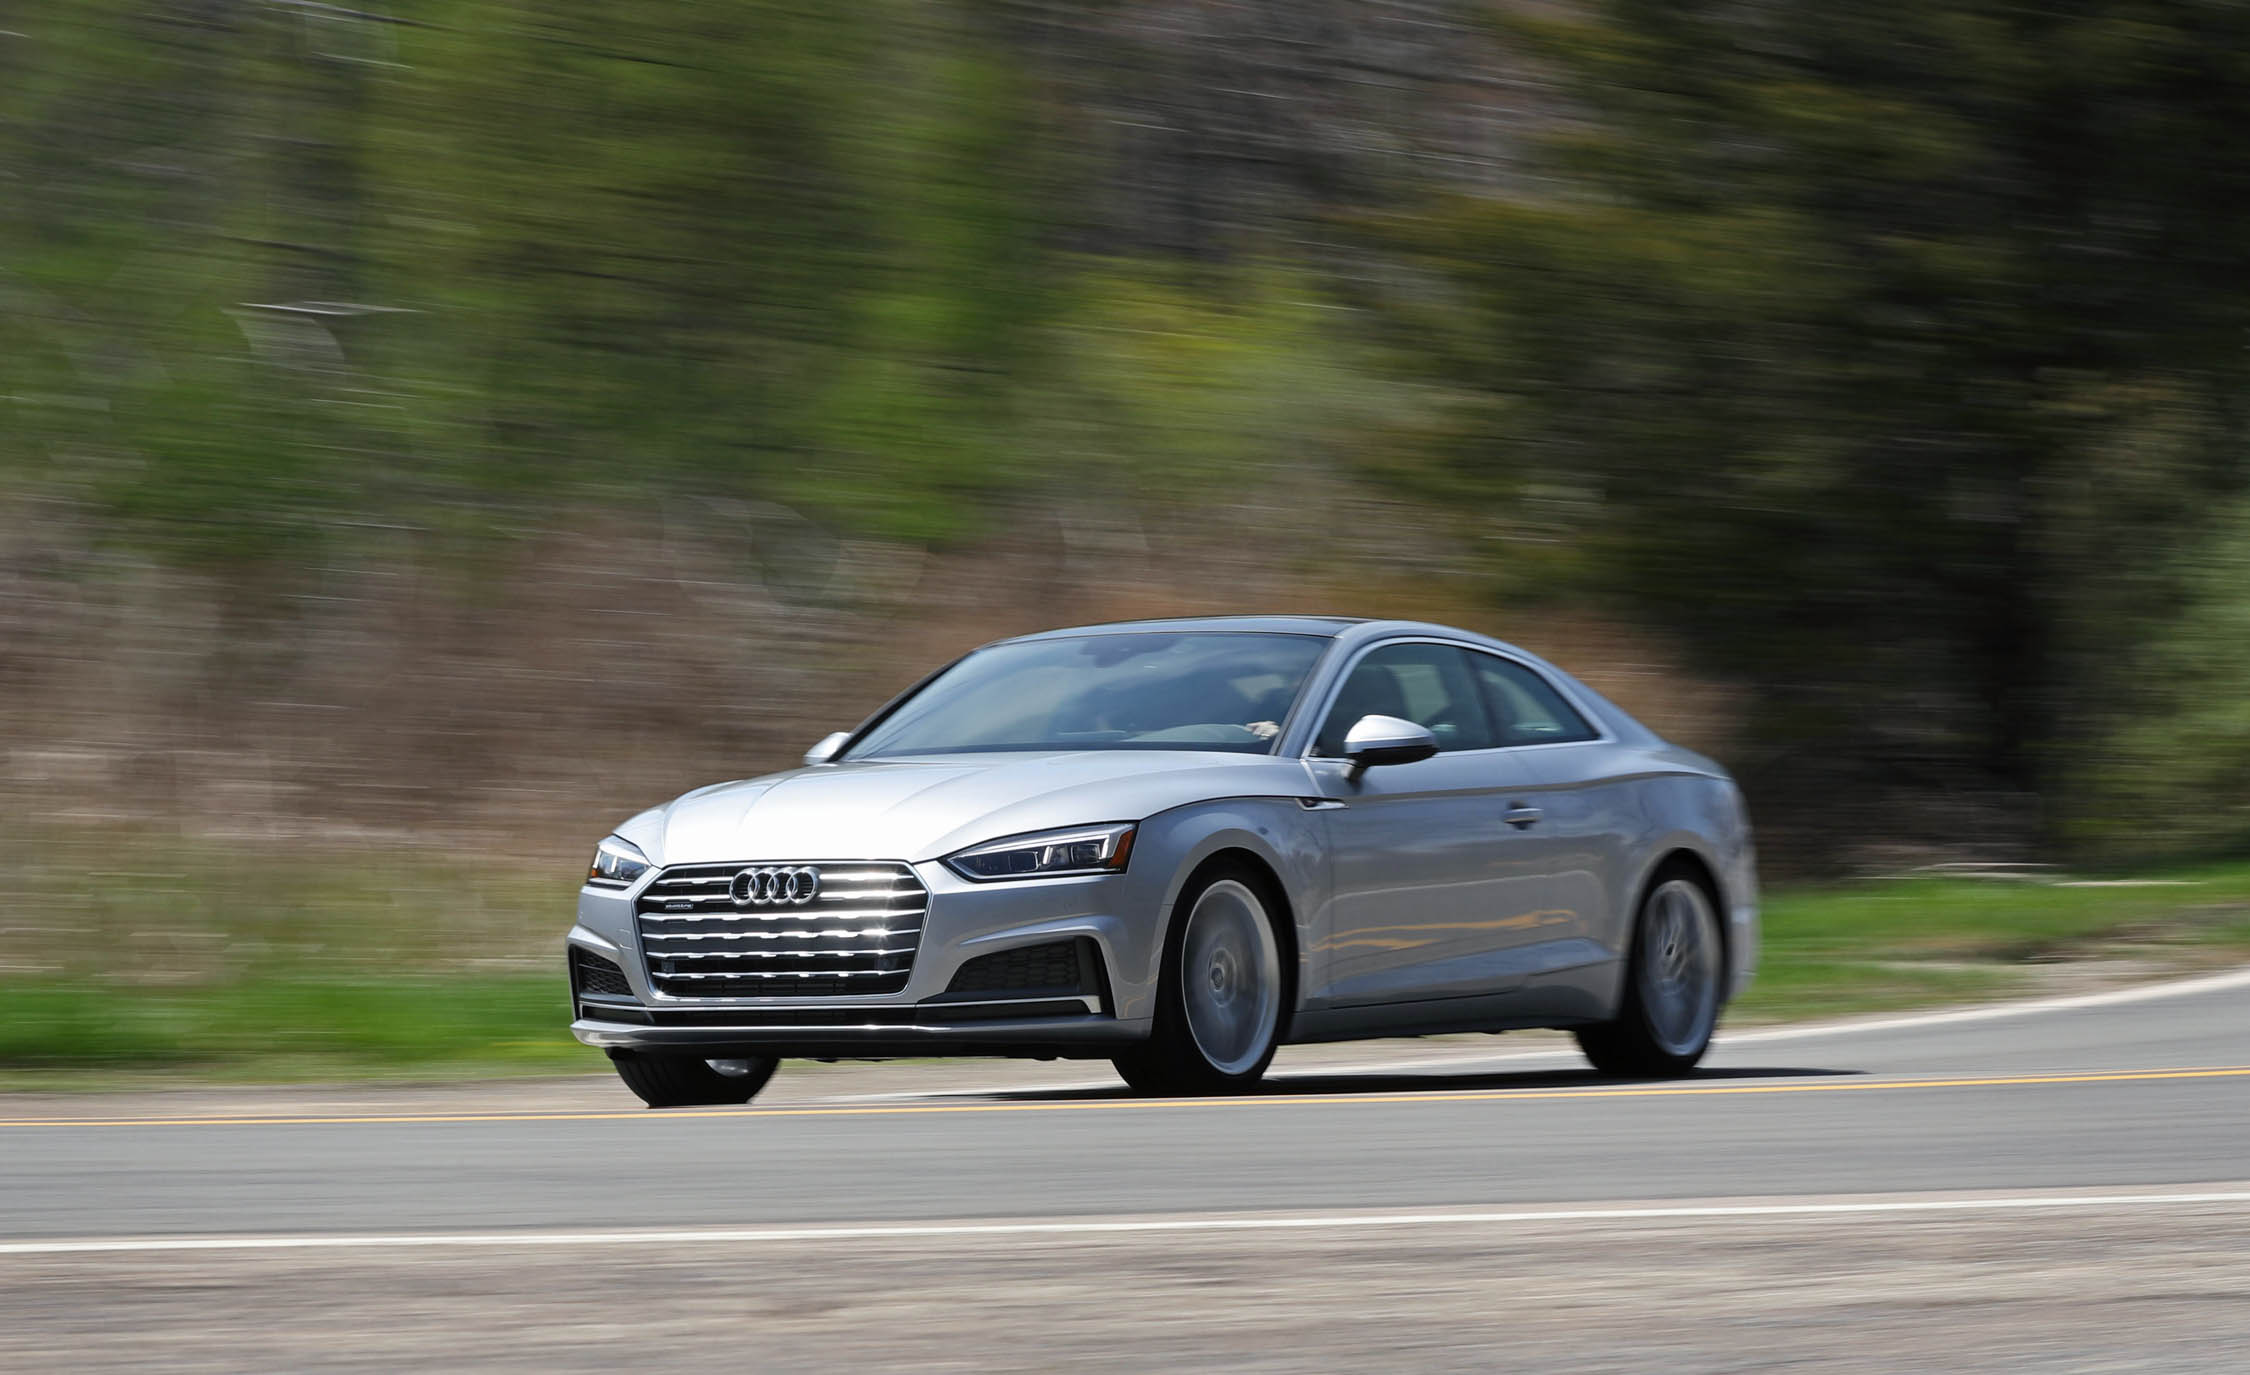 2018 Audi A5 Coupe Silver Metallic (Photo 40 of 50)